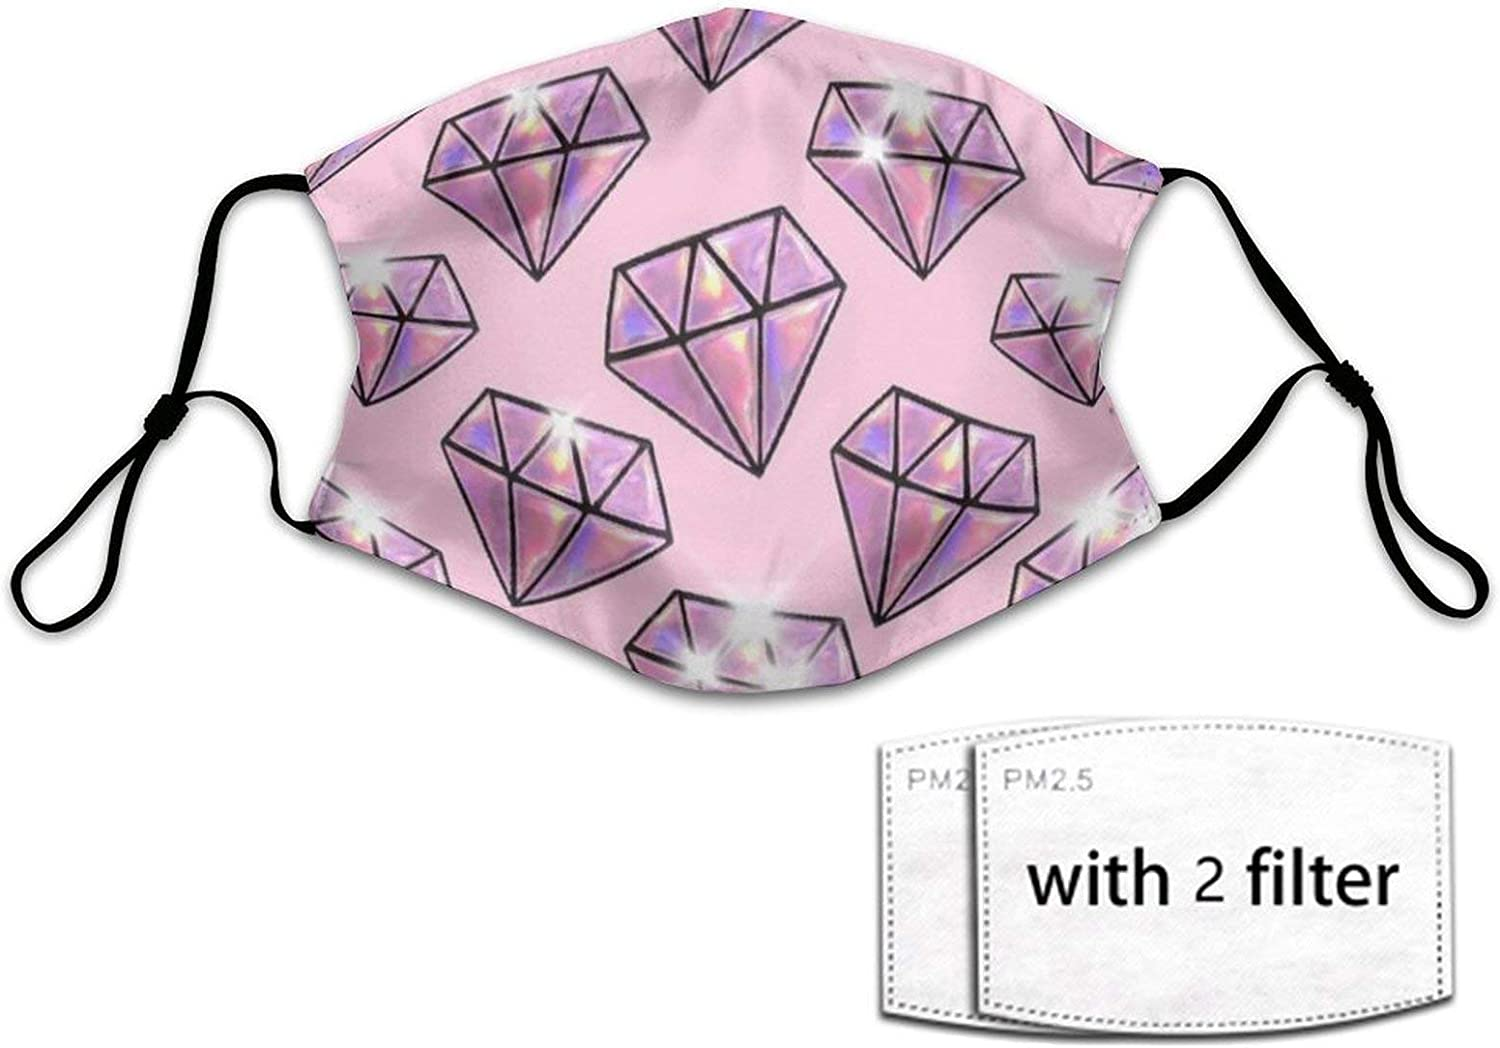 NiYoung Unisex Kids Comfy Protective Masks Neck Gaiter with 2 Filters, Anti Dust Windproof Face Bandana (Pink Diamonds Art Face Covering)